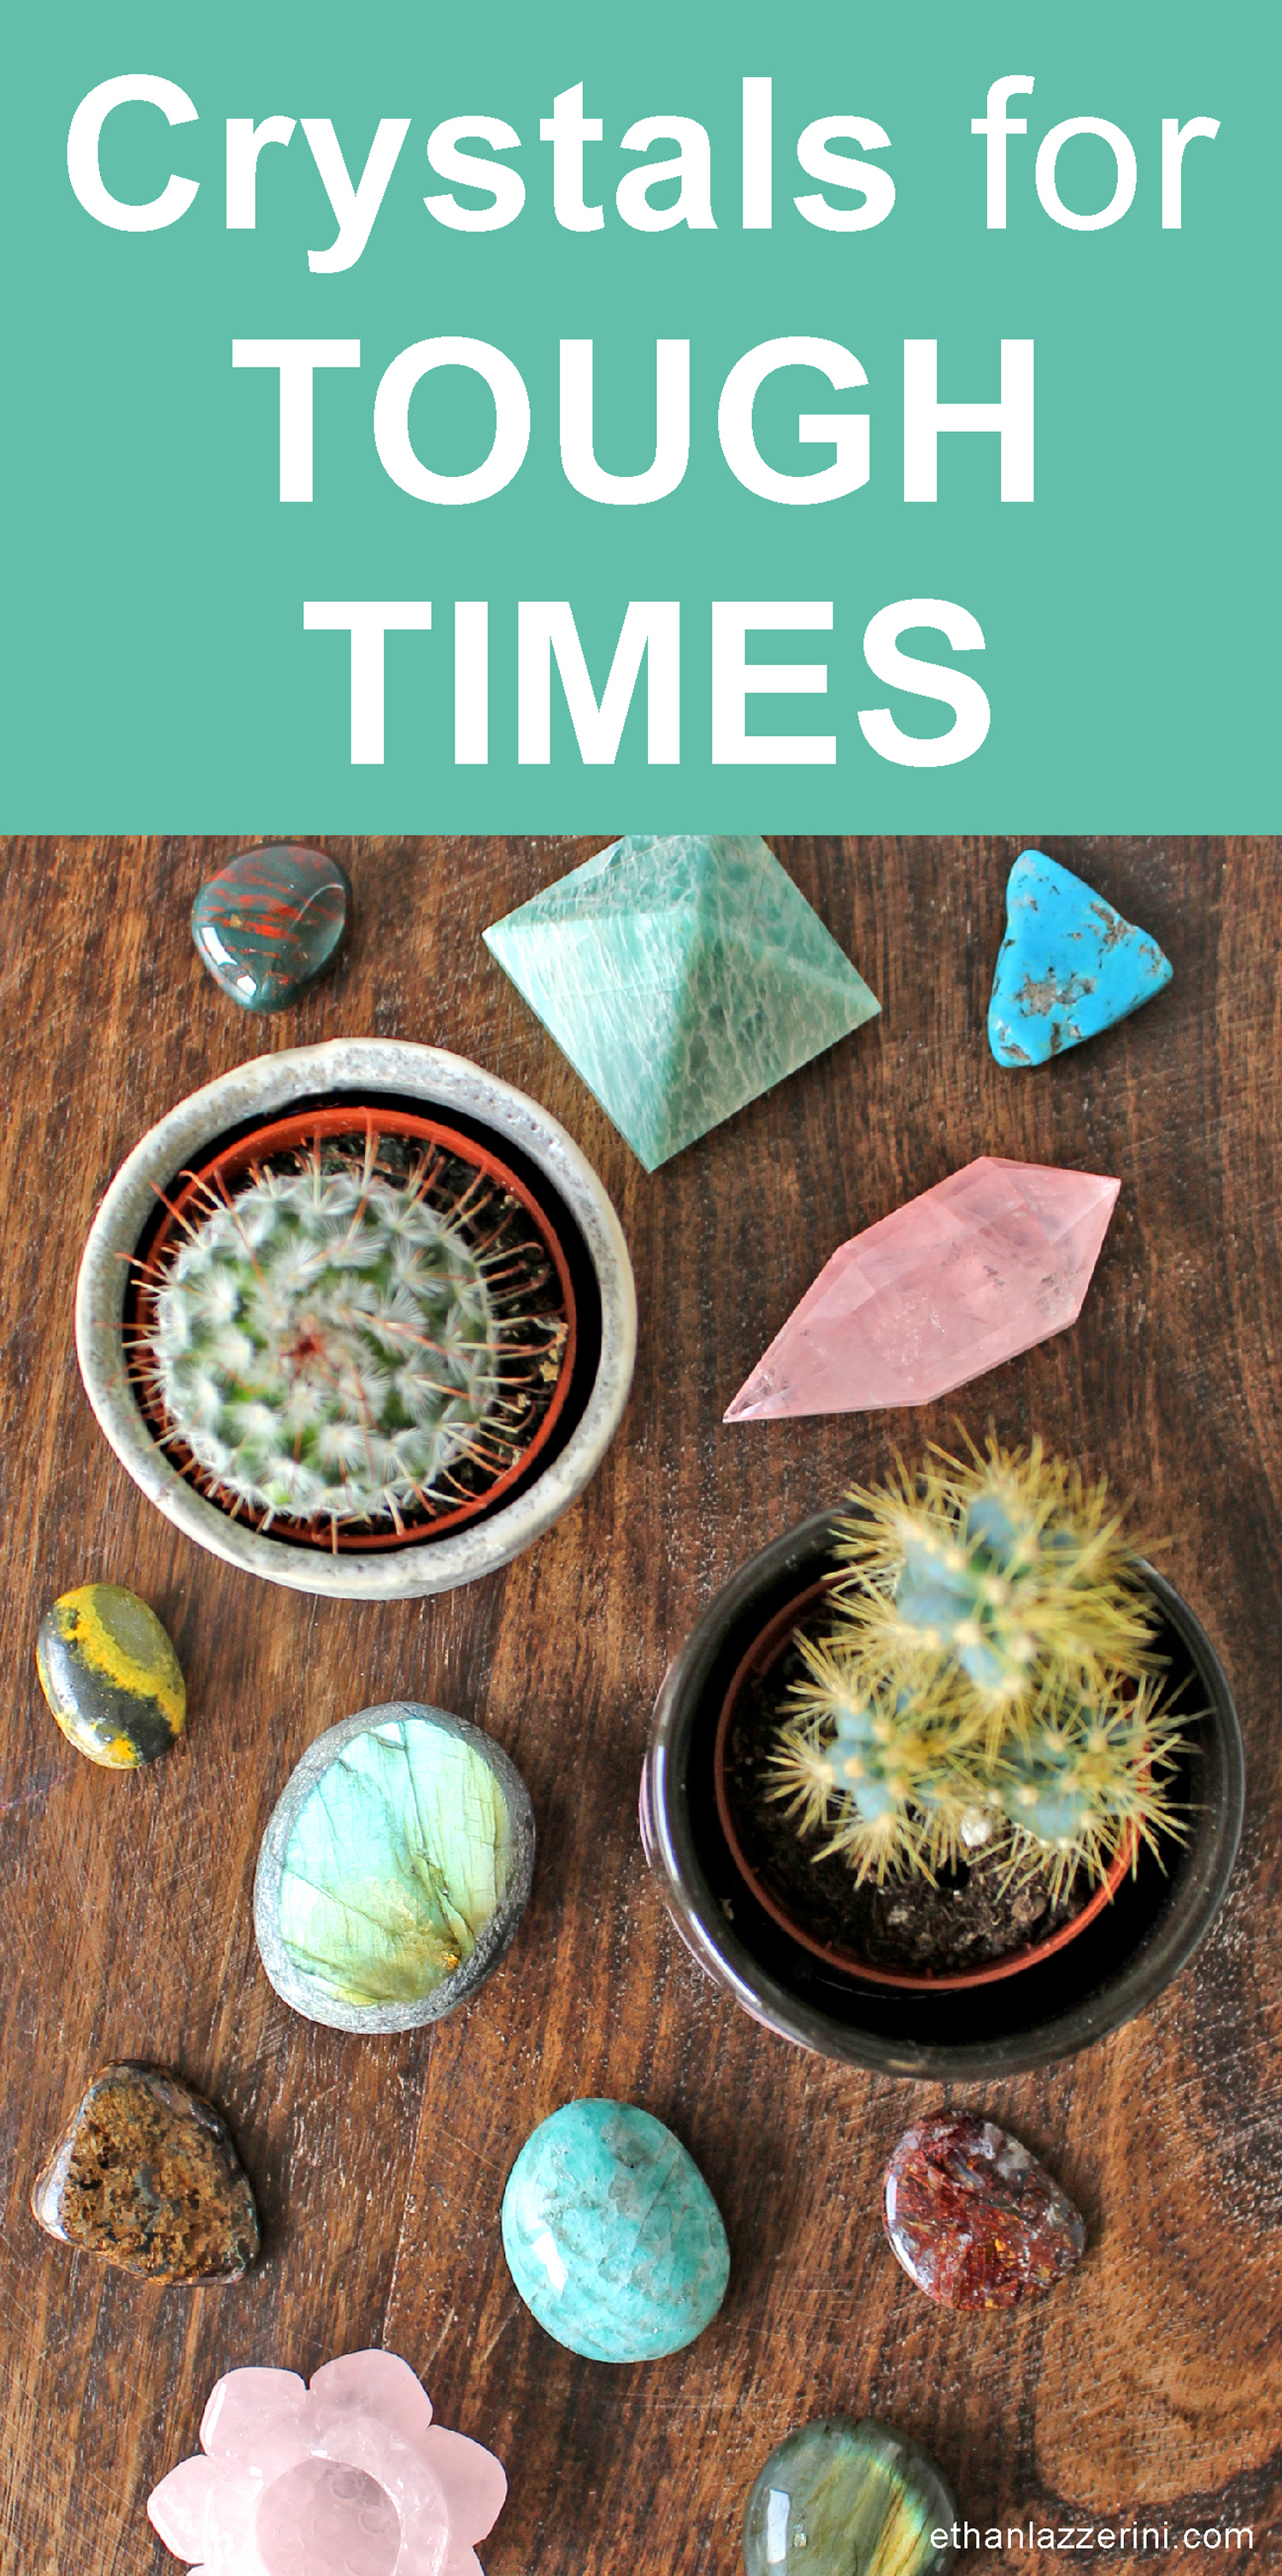 Crystals for tough times. Crystals and cacti